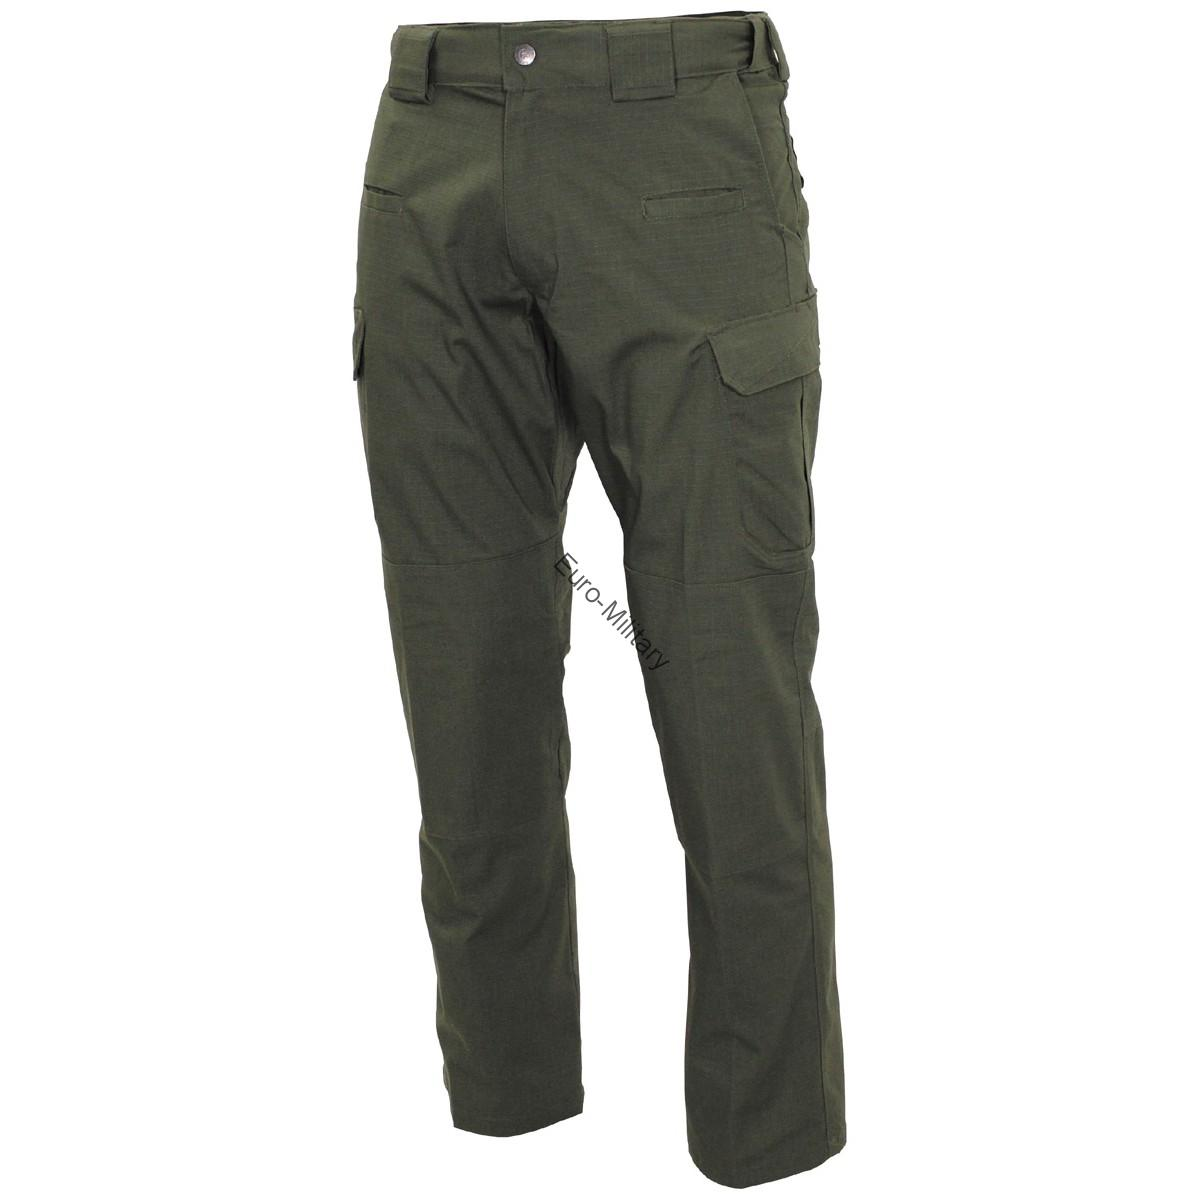 MFH® Defense High Quality Mens Tactical Teflon Coated Rip Stop Pants - OD Green